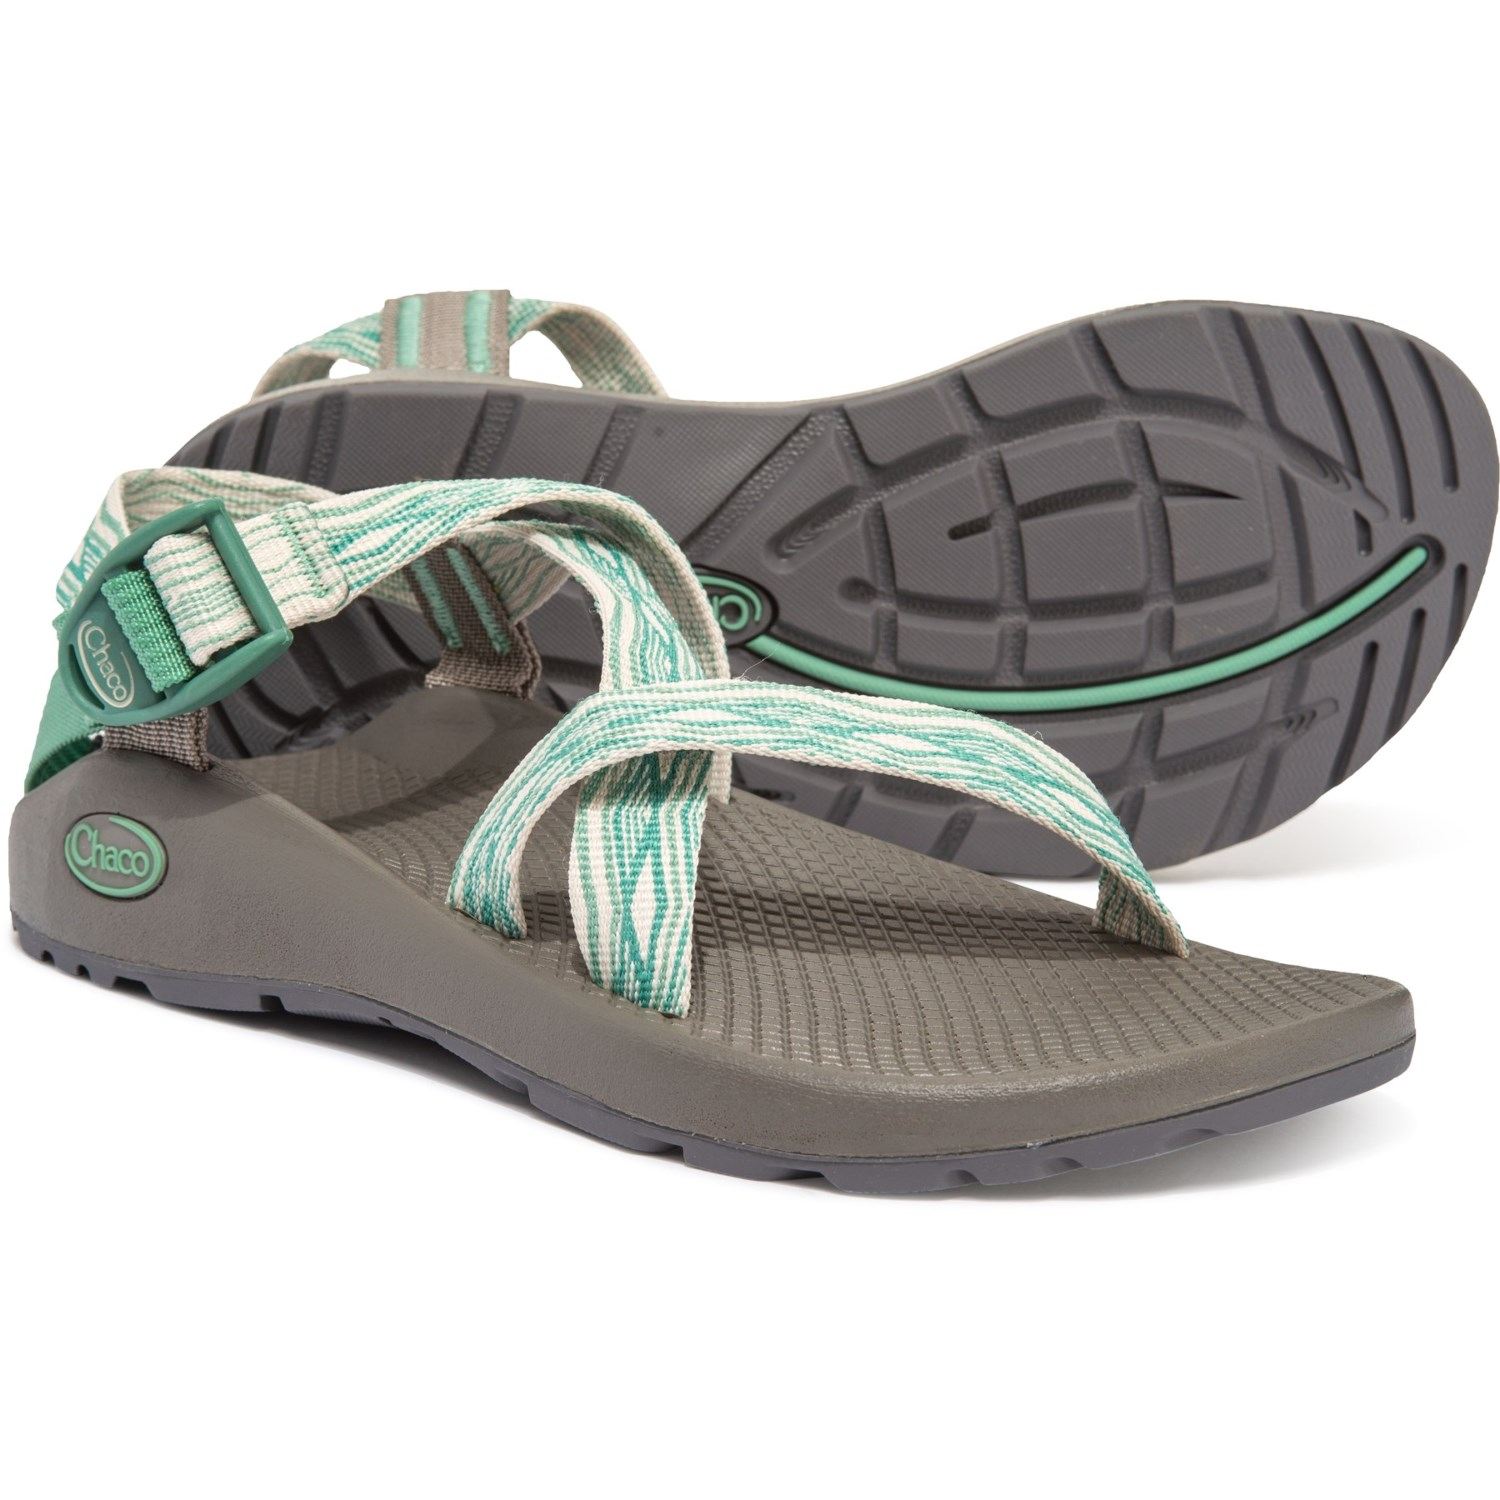 baf8d2ce4ab0 Chaco Z 1® Classic Sport Sandals (For Women) in Pine ...